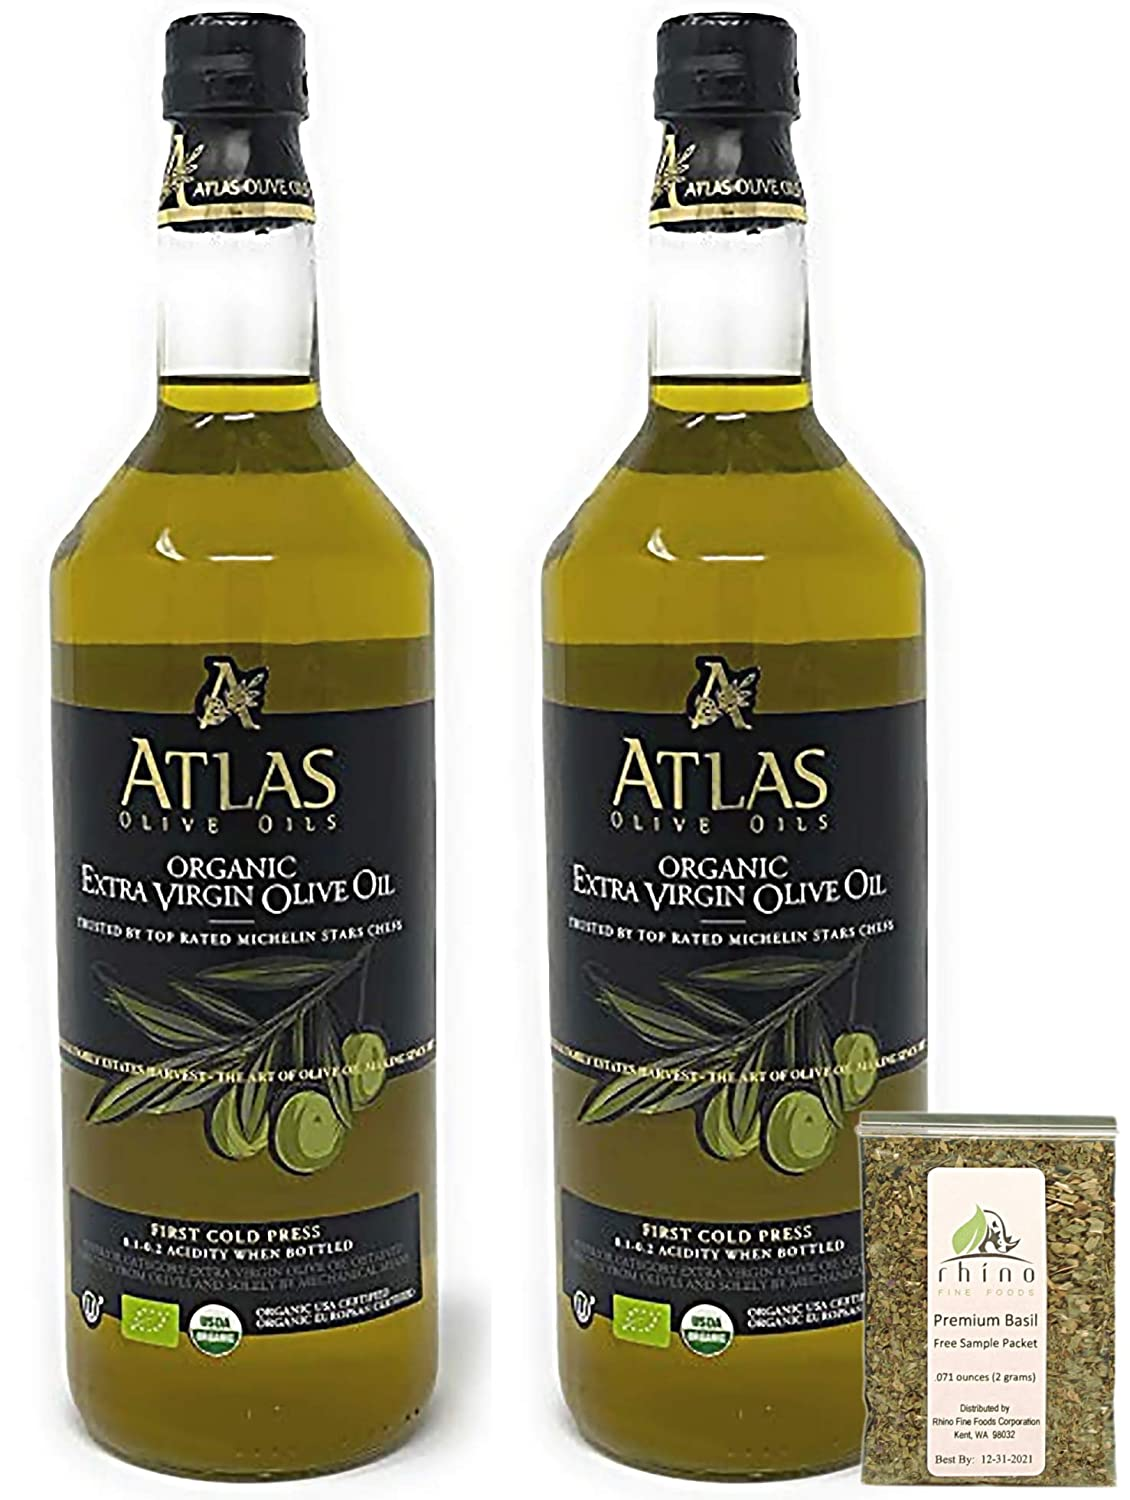 Atlas Olive Oils SARL, Moroccan Organic Extra Virgin Olive Oil (Pack of 2), Imported from Morocco, (1 liter) 33.814 fl oz (each) + Includes-Free Premium Basil Leaves from Rhino Fine Foods, .071 oz